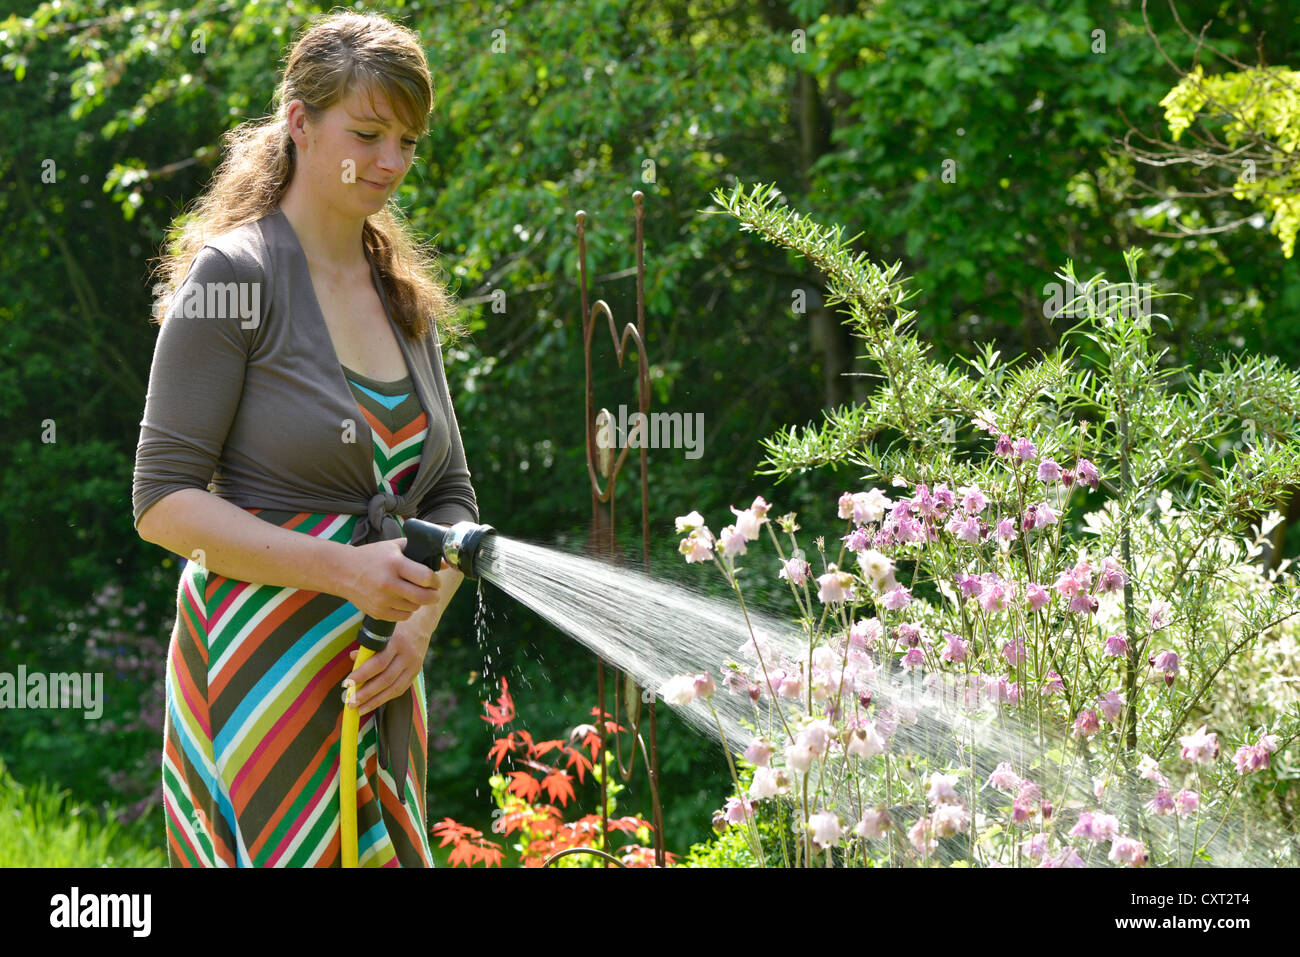 single bbw women in spring garden Woman having a coffee break while working in the garden, spring gardening concept crocus yellow grows in a spring garden in the snow beautiful primrose with drops of dew on a green background.